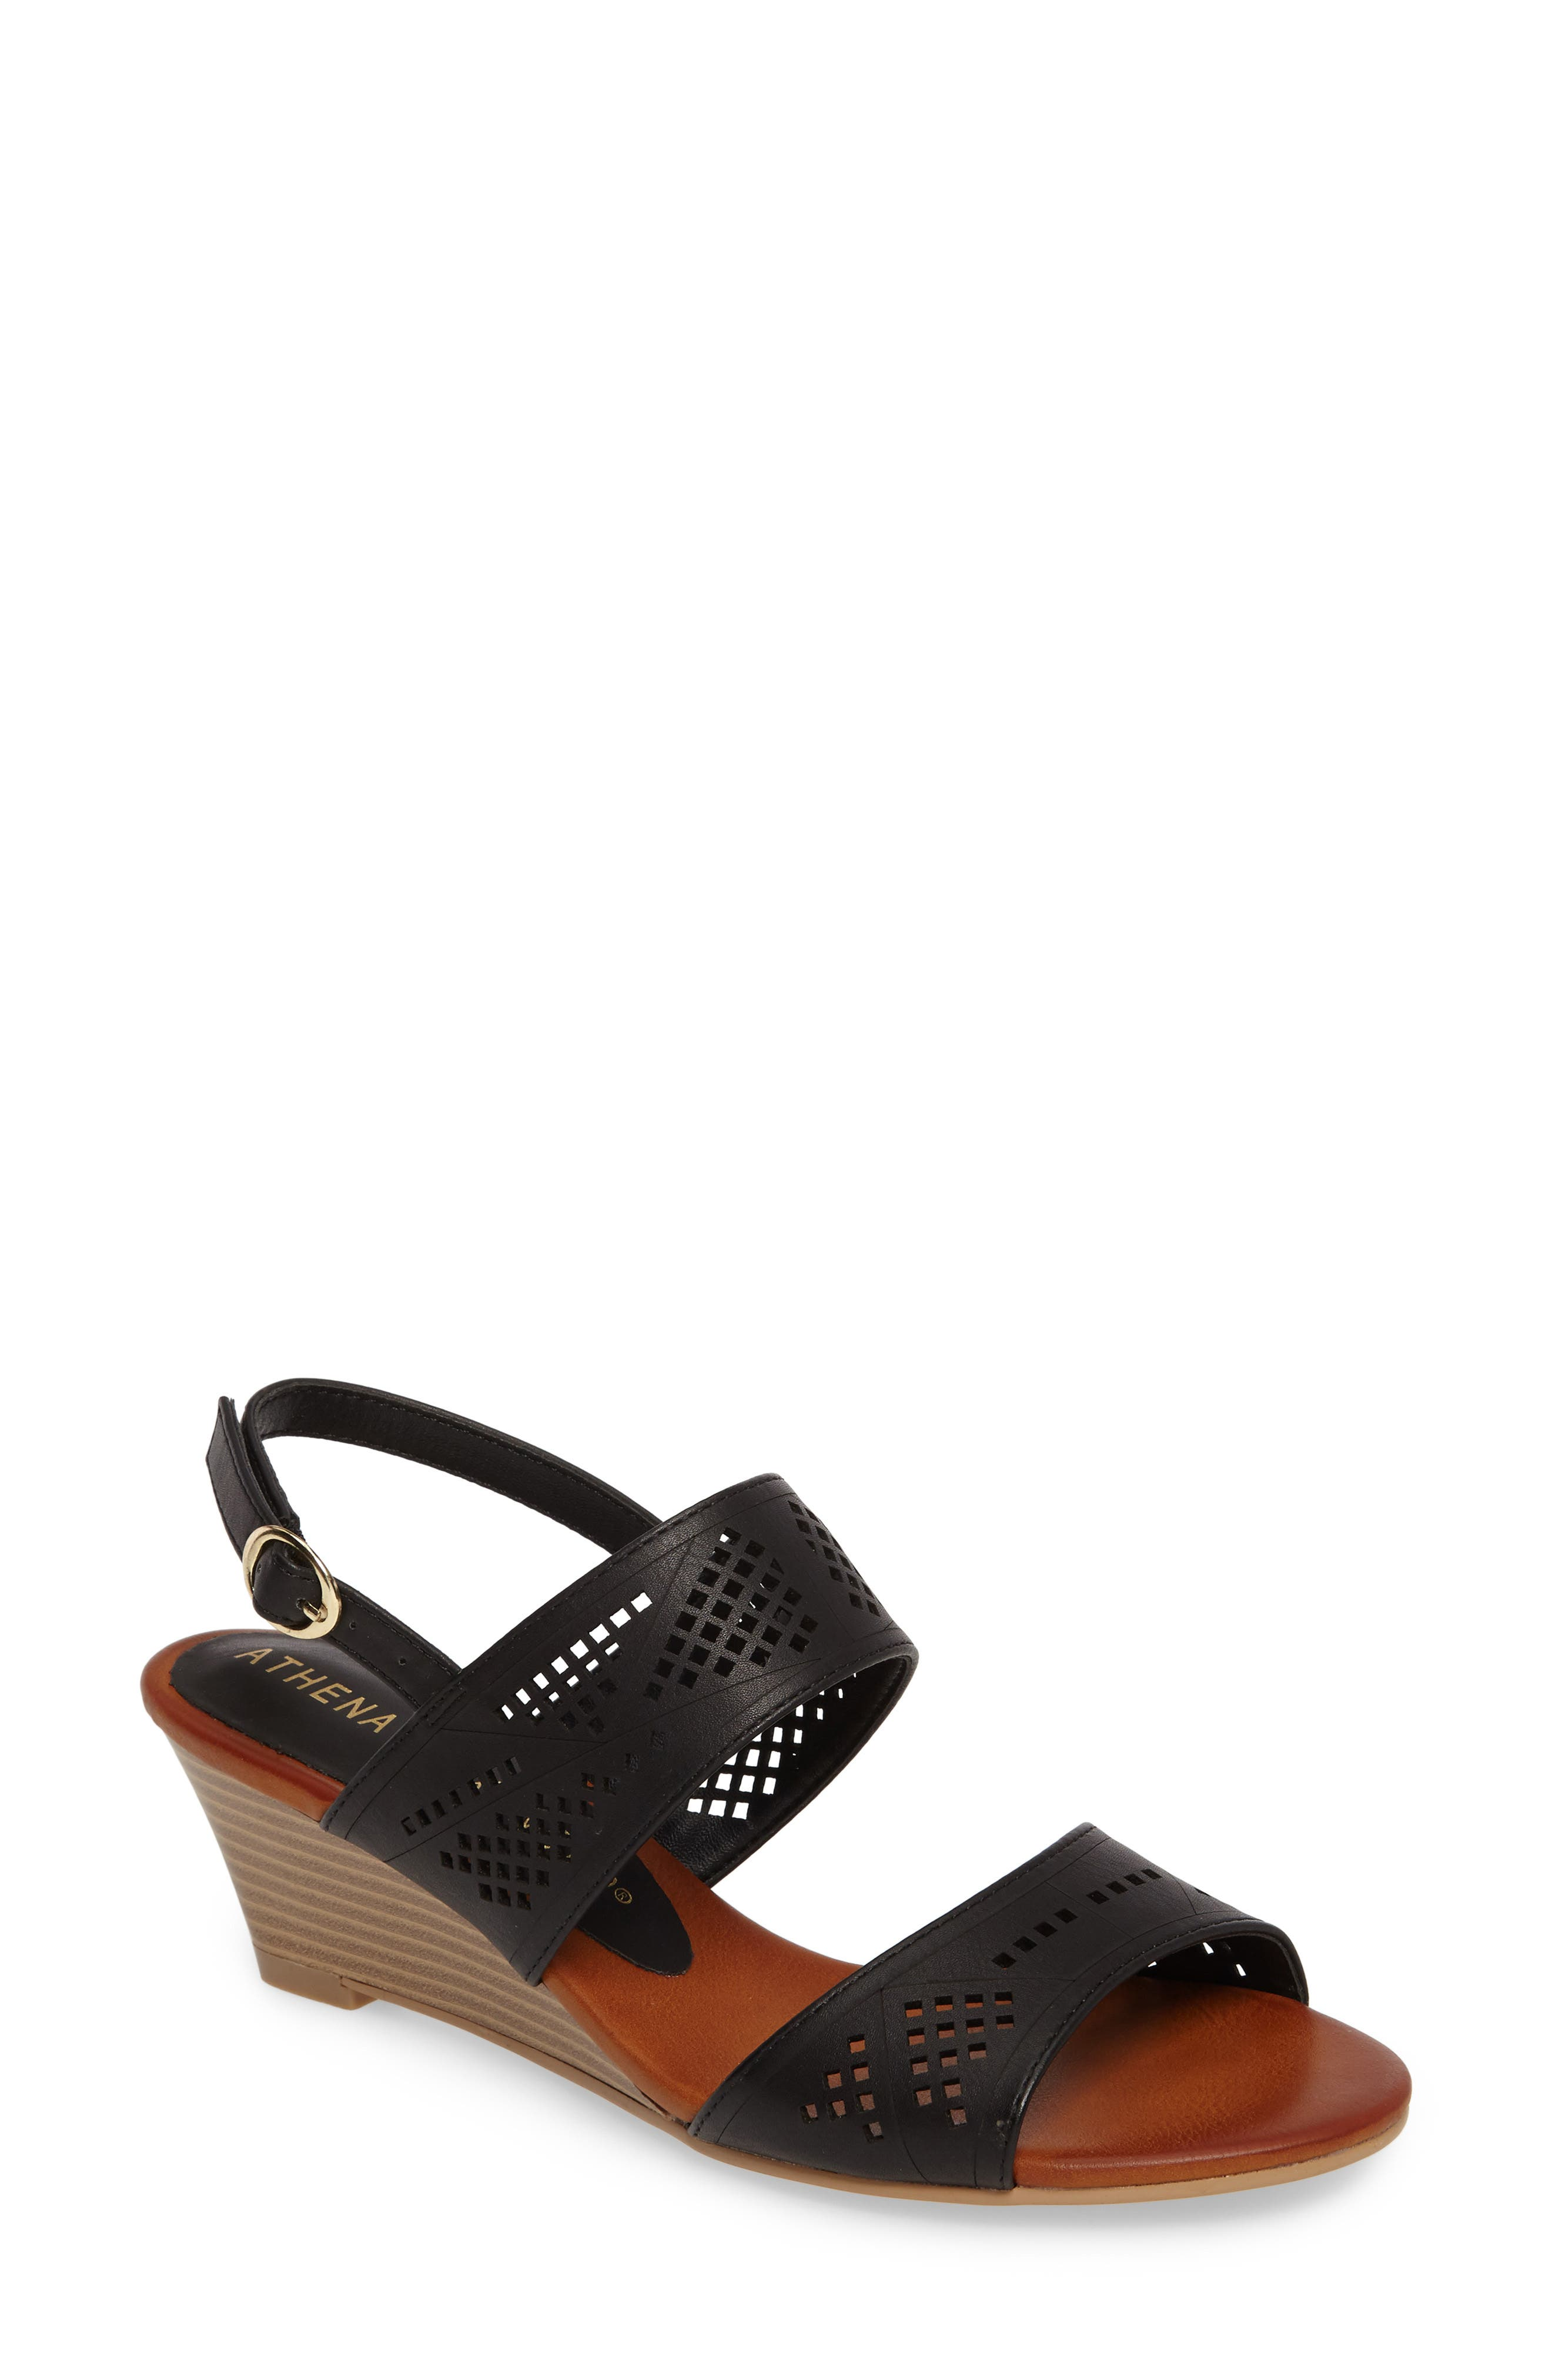 Main Image - Athena Alexander Sparce Perforated Wedge Sandal (Women)